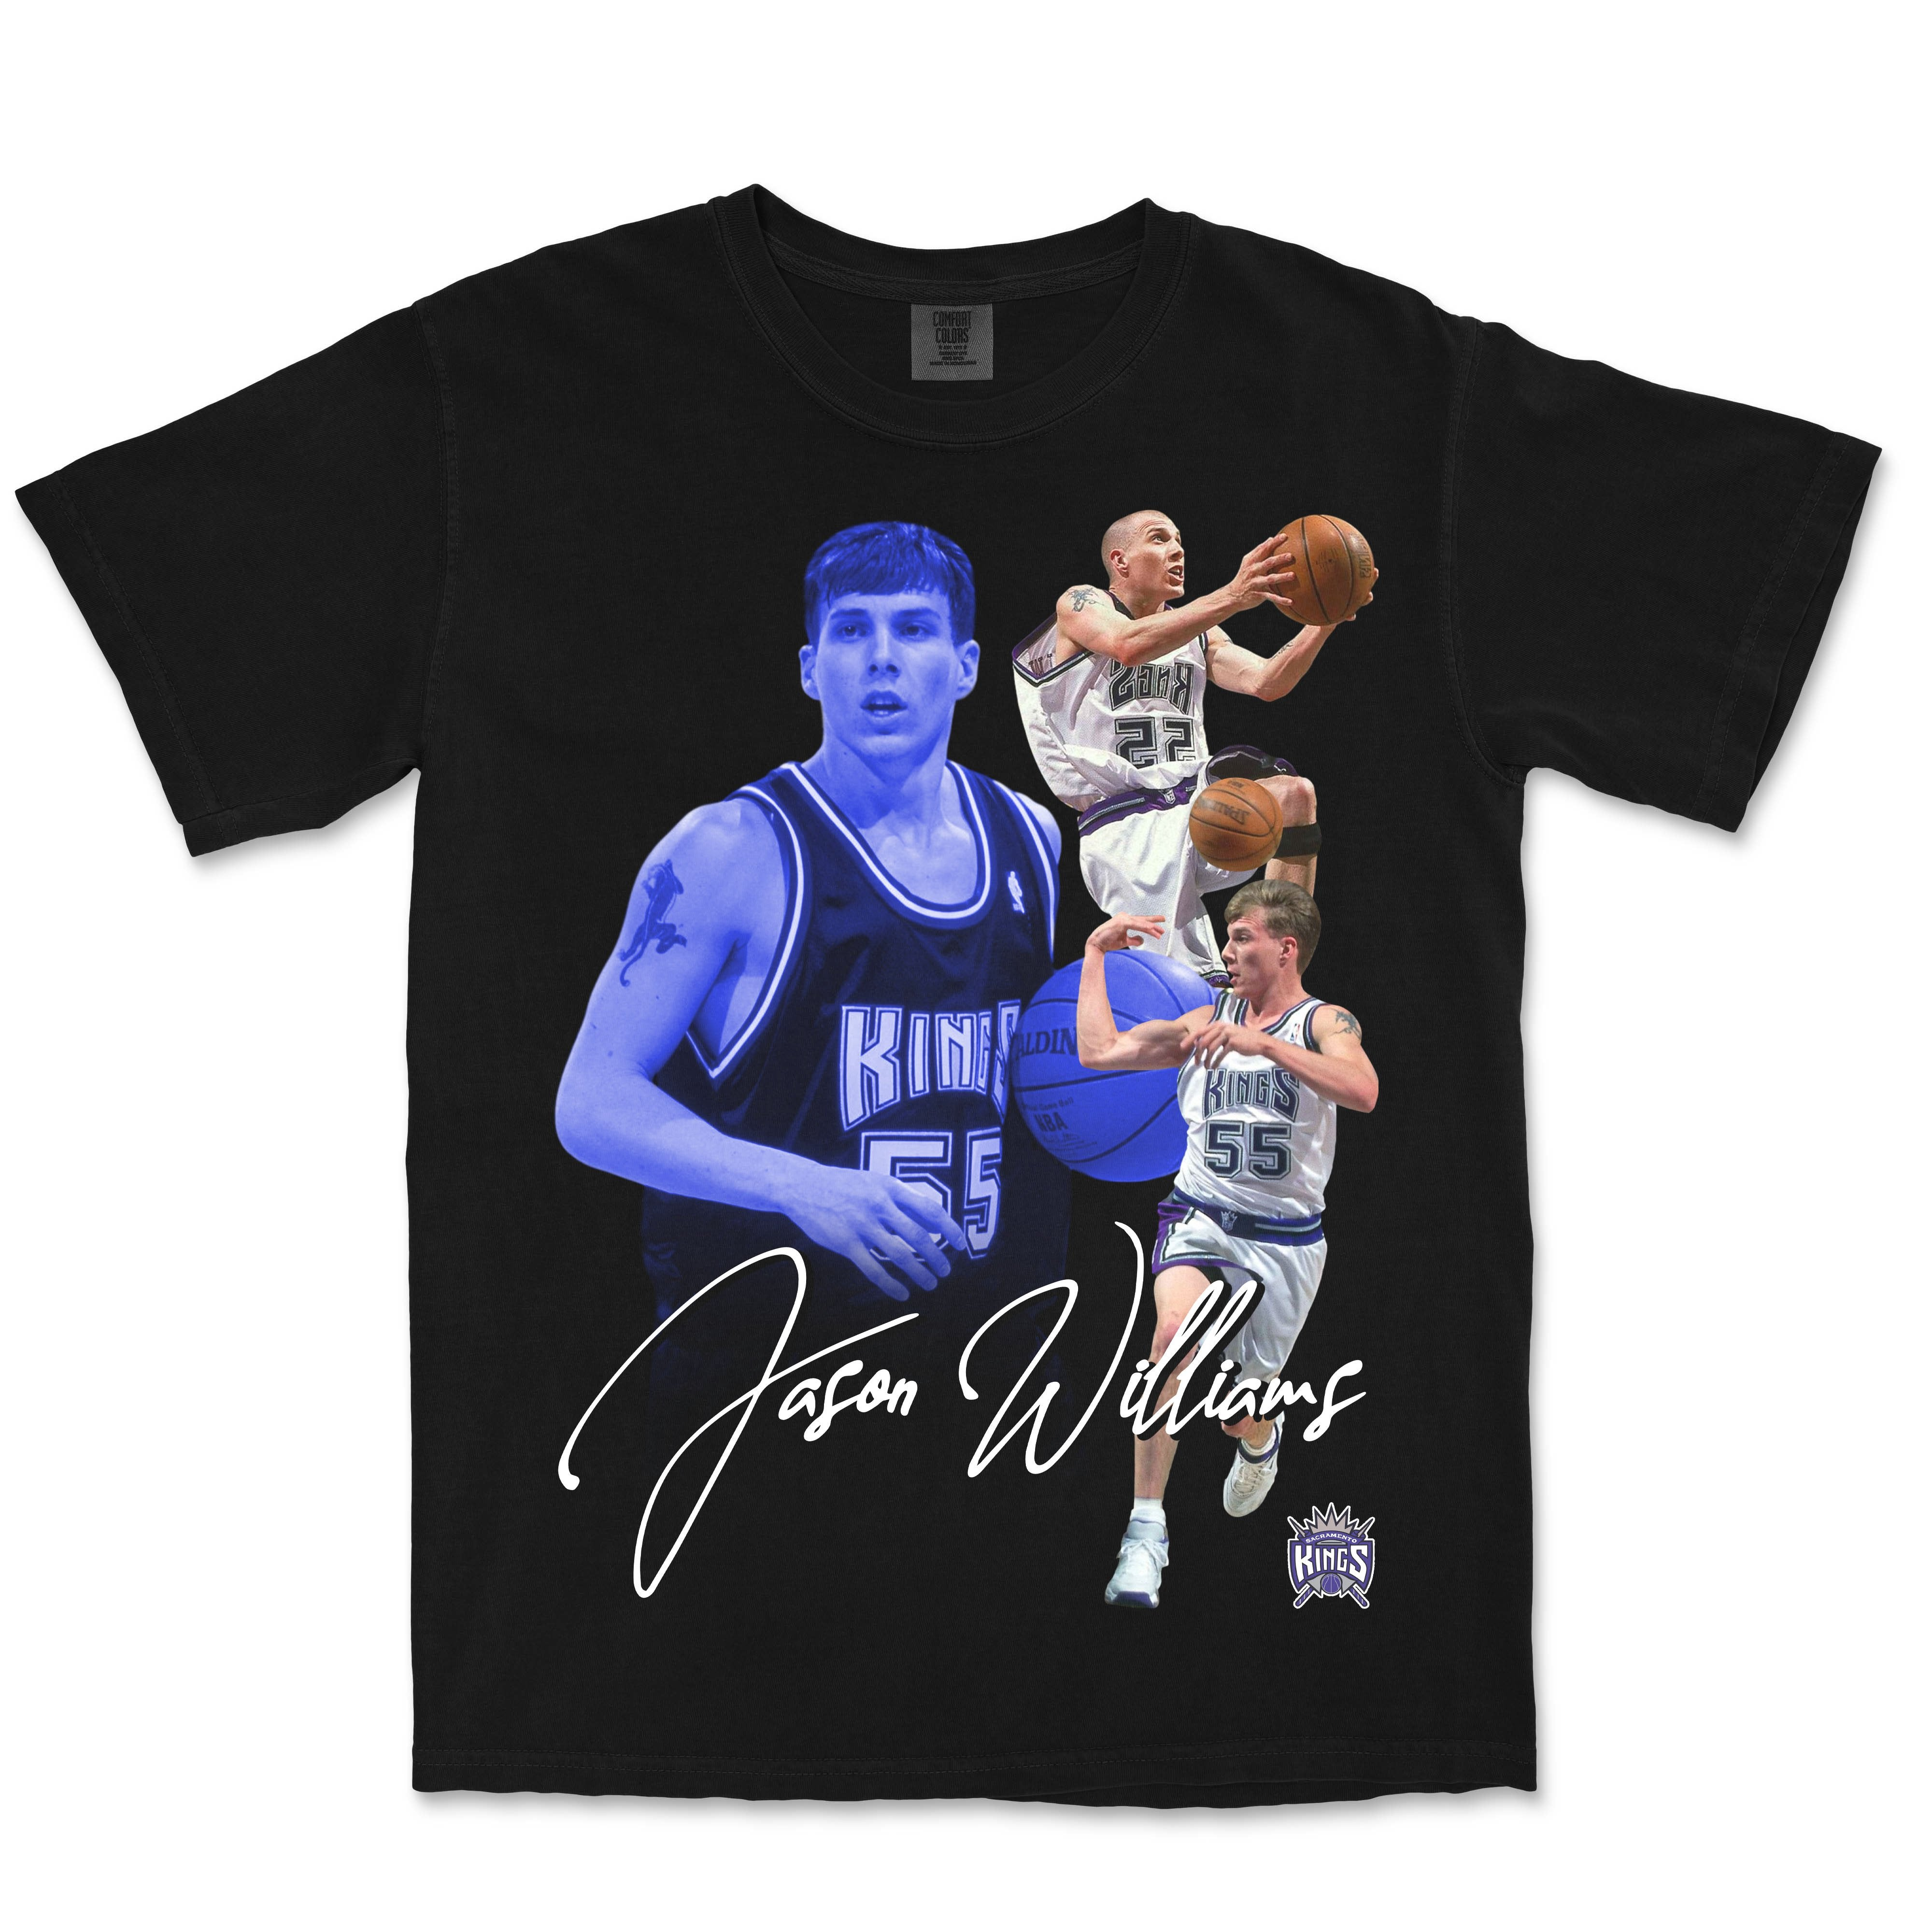 Jason Williams T-Shirt (black)